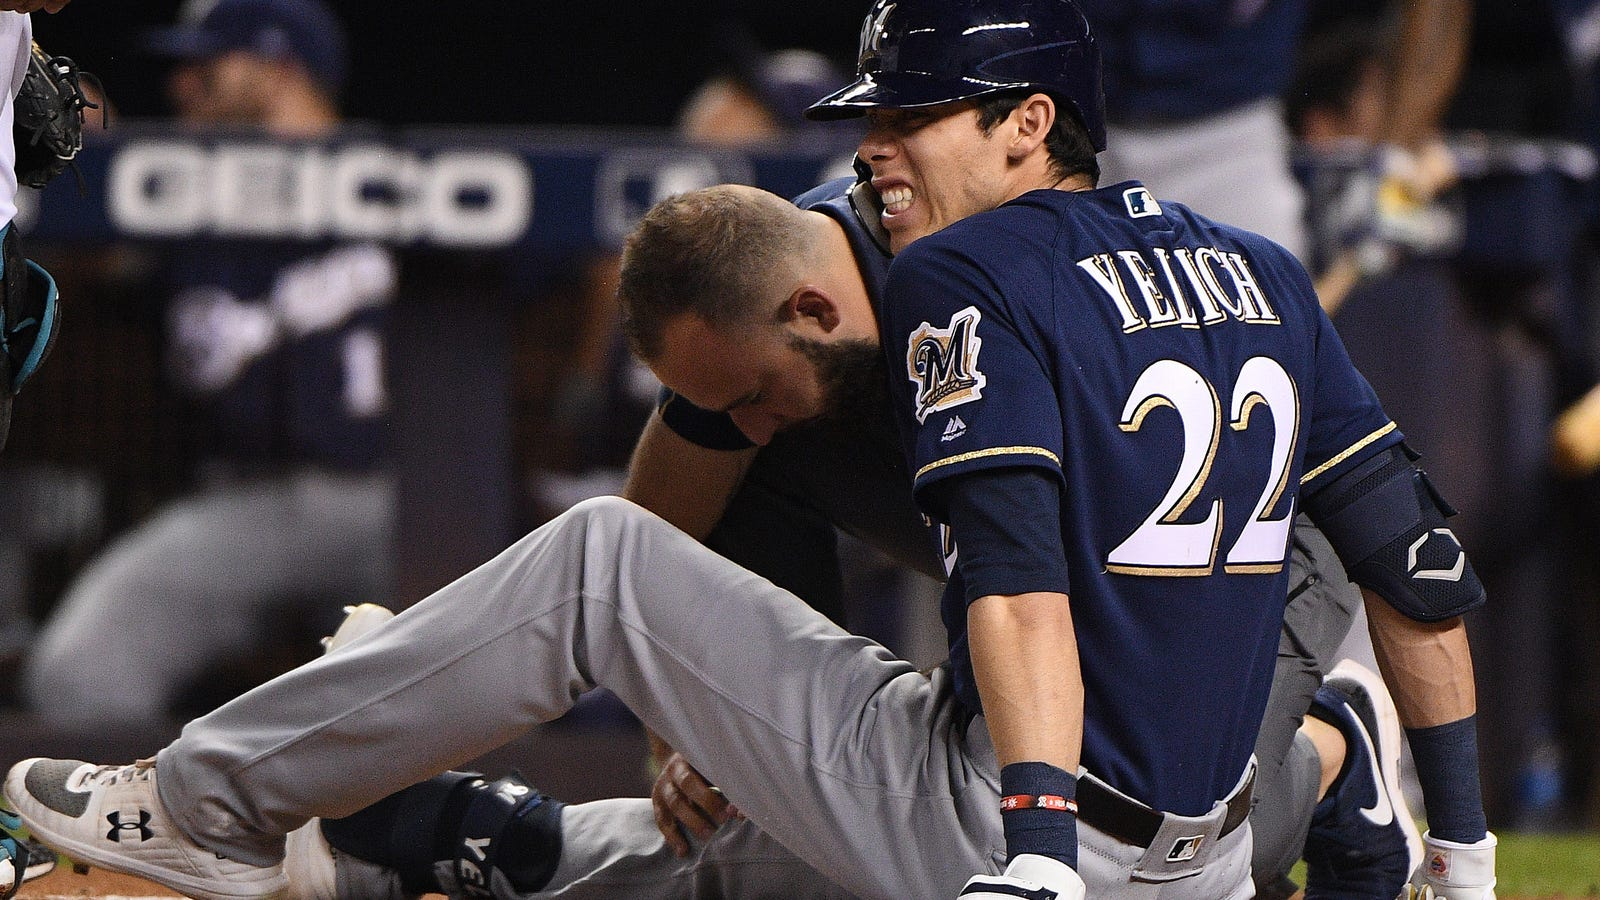 Christian Yelich Fractures Kneecap With Foul Ball, Is Done For The Season